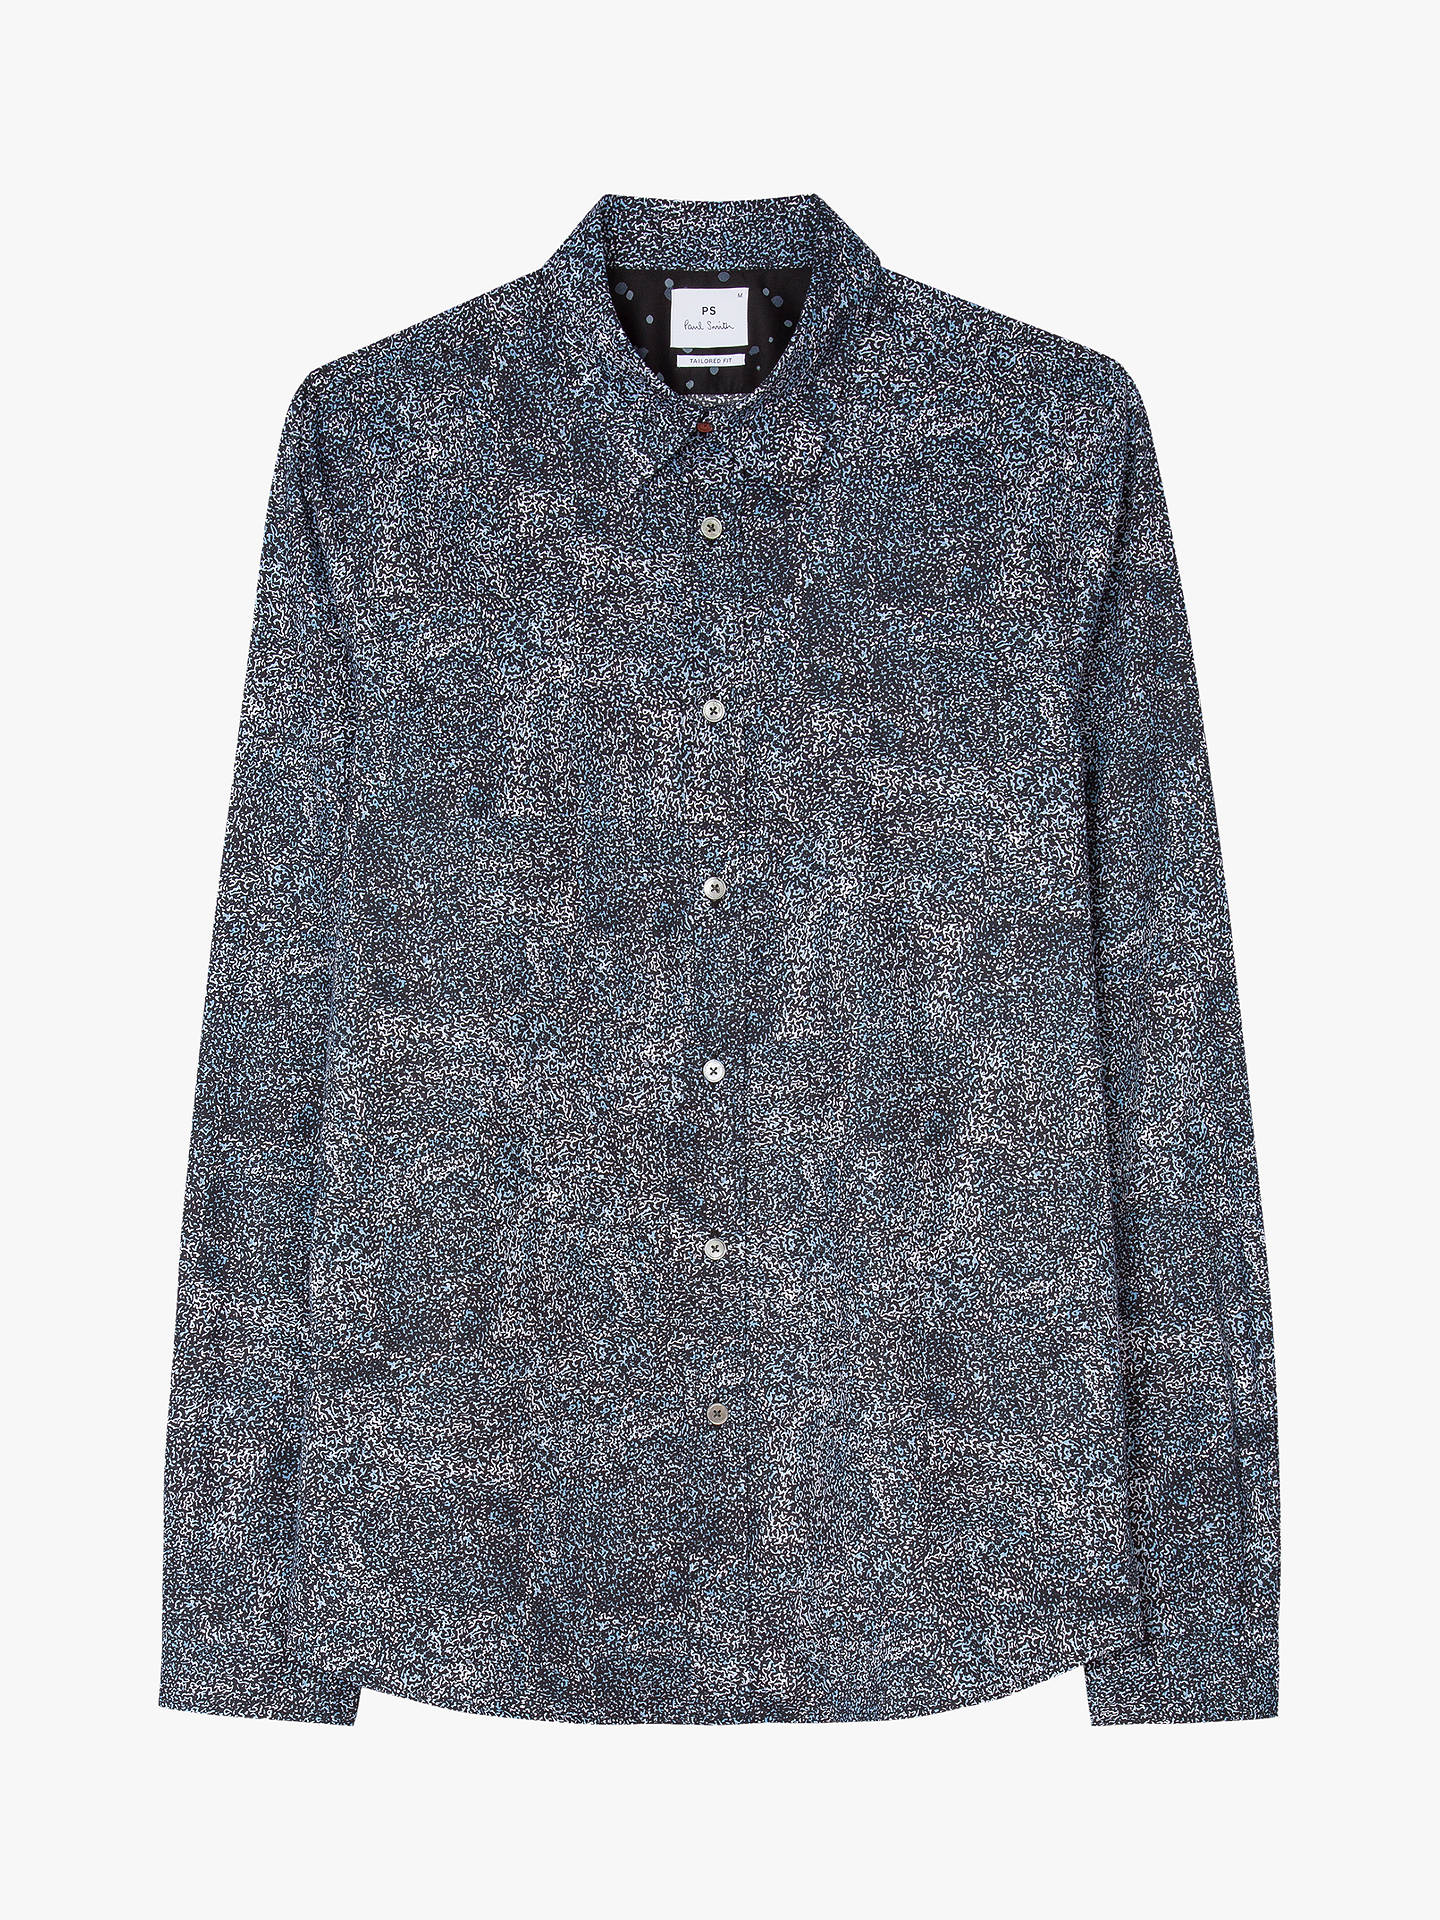 BuyPS Paul Smith Digital Scribble Print Shirt, Navy, M Online at johnlewis.com